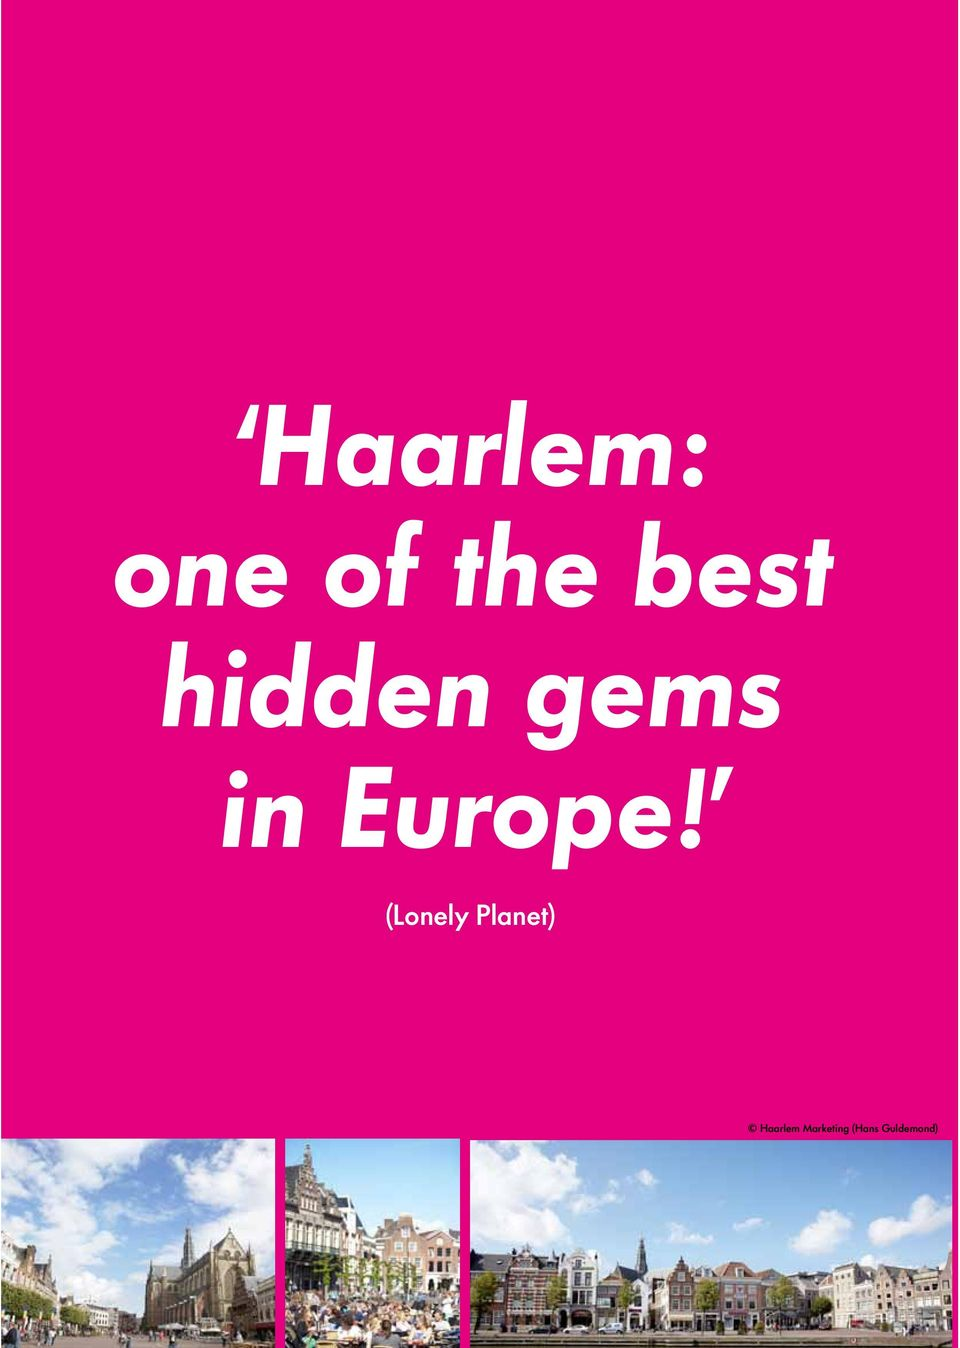 (Lonely Planet) Haarlem